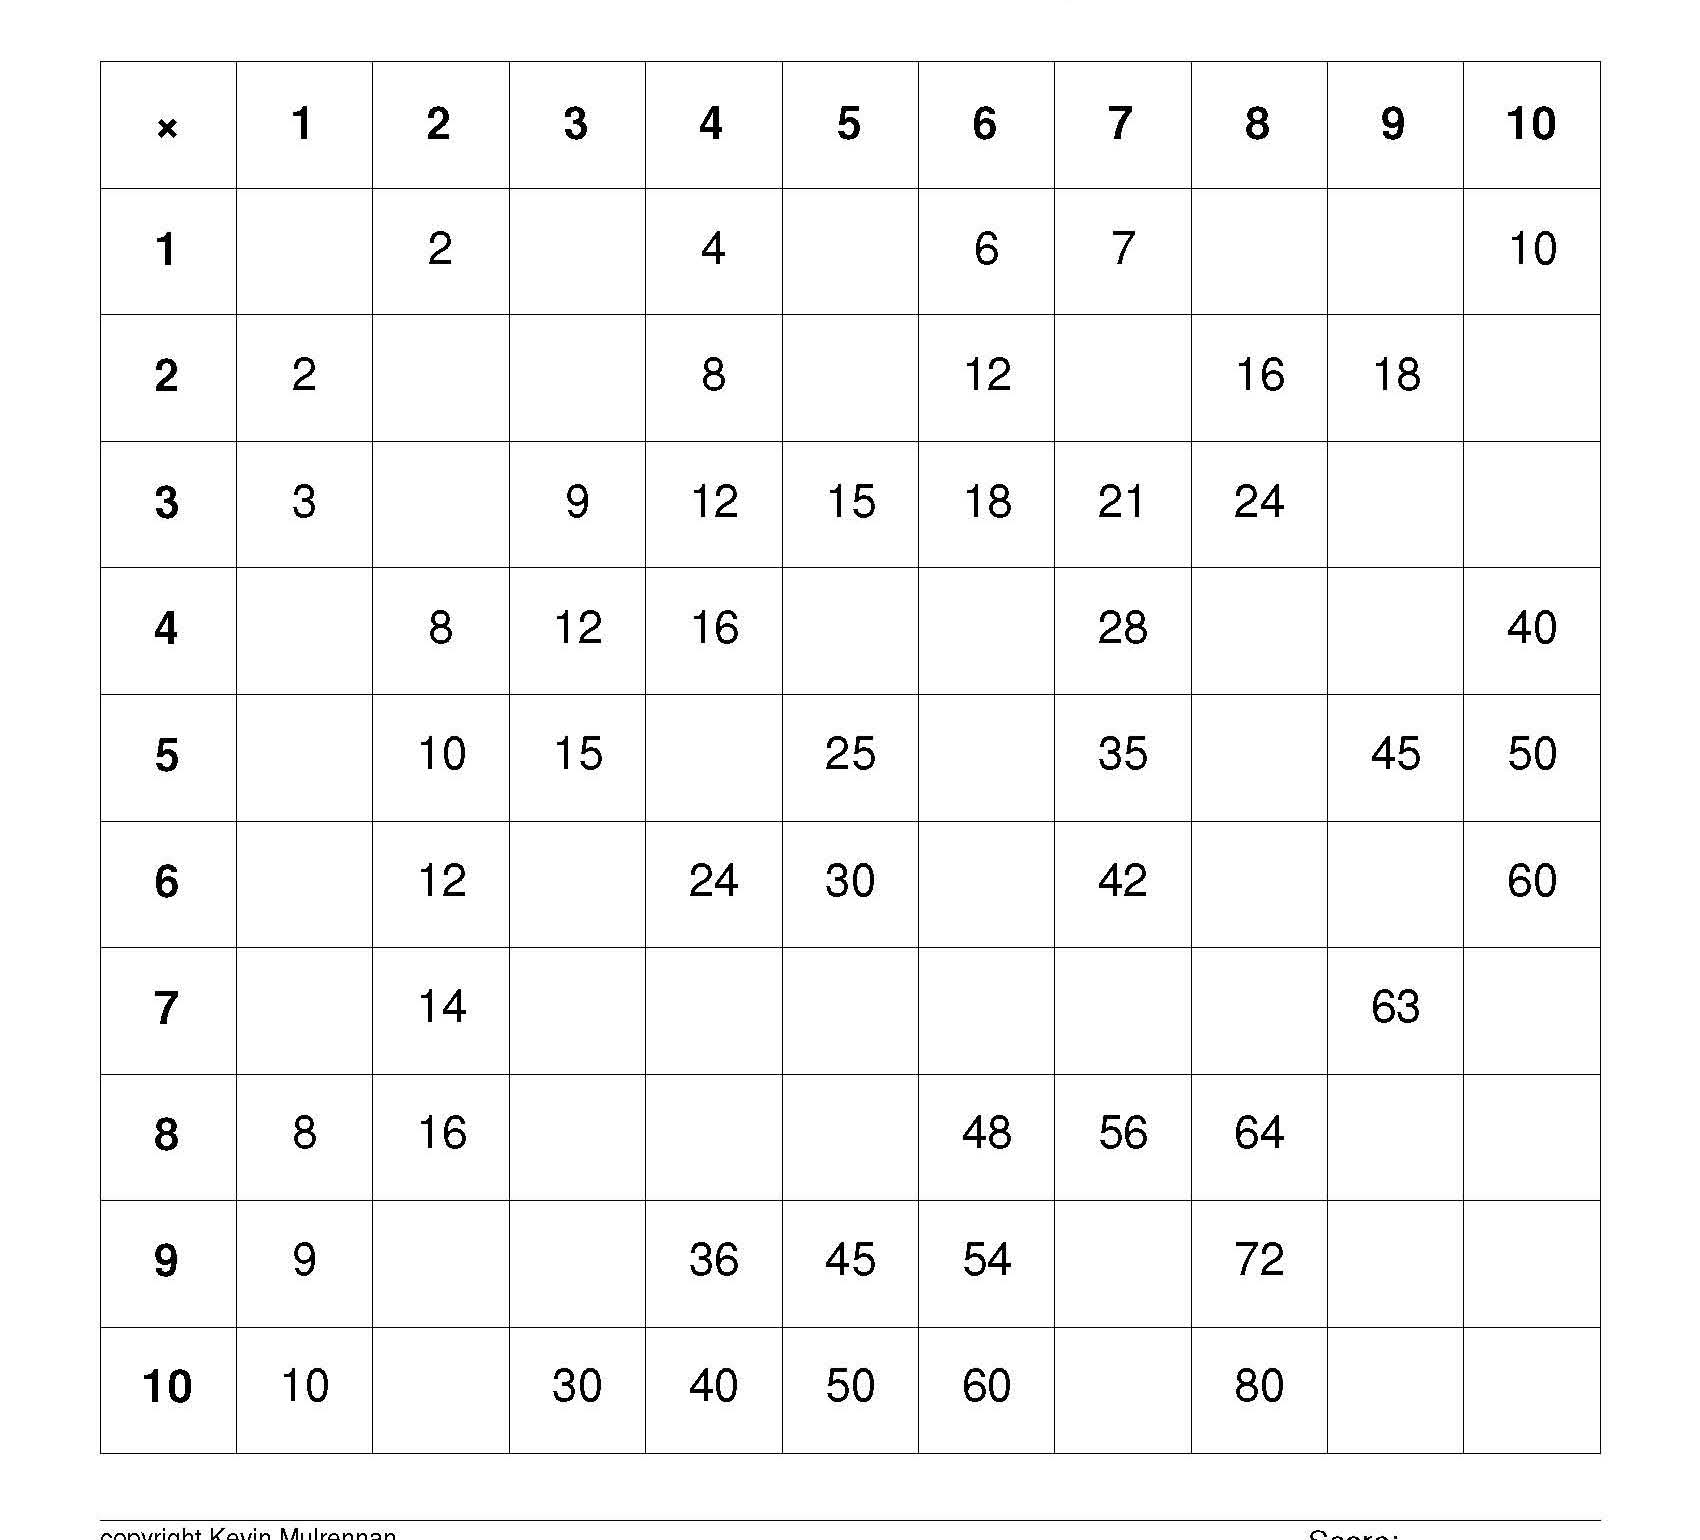 Multiplication Tables 12X12 Maths - 20+ Printables pertaining to Multiplication Worksheets Up To 12X12